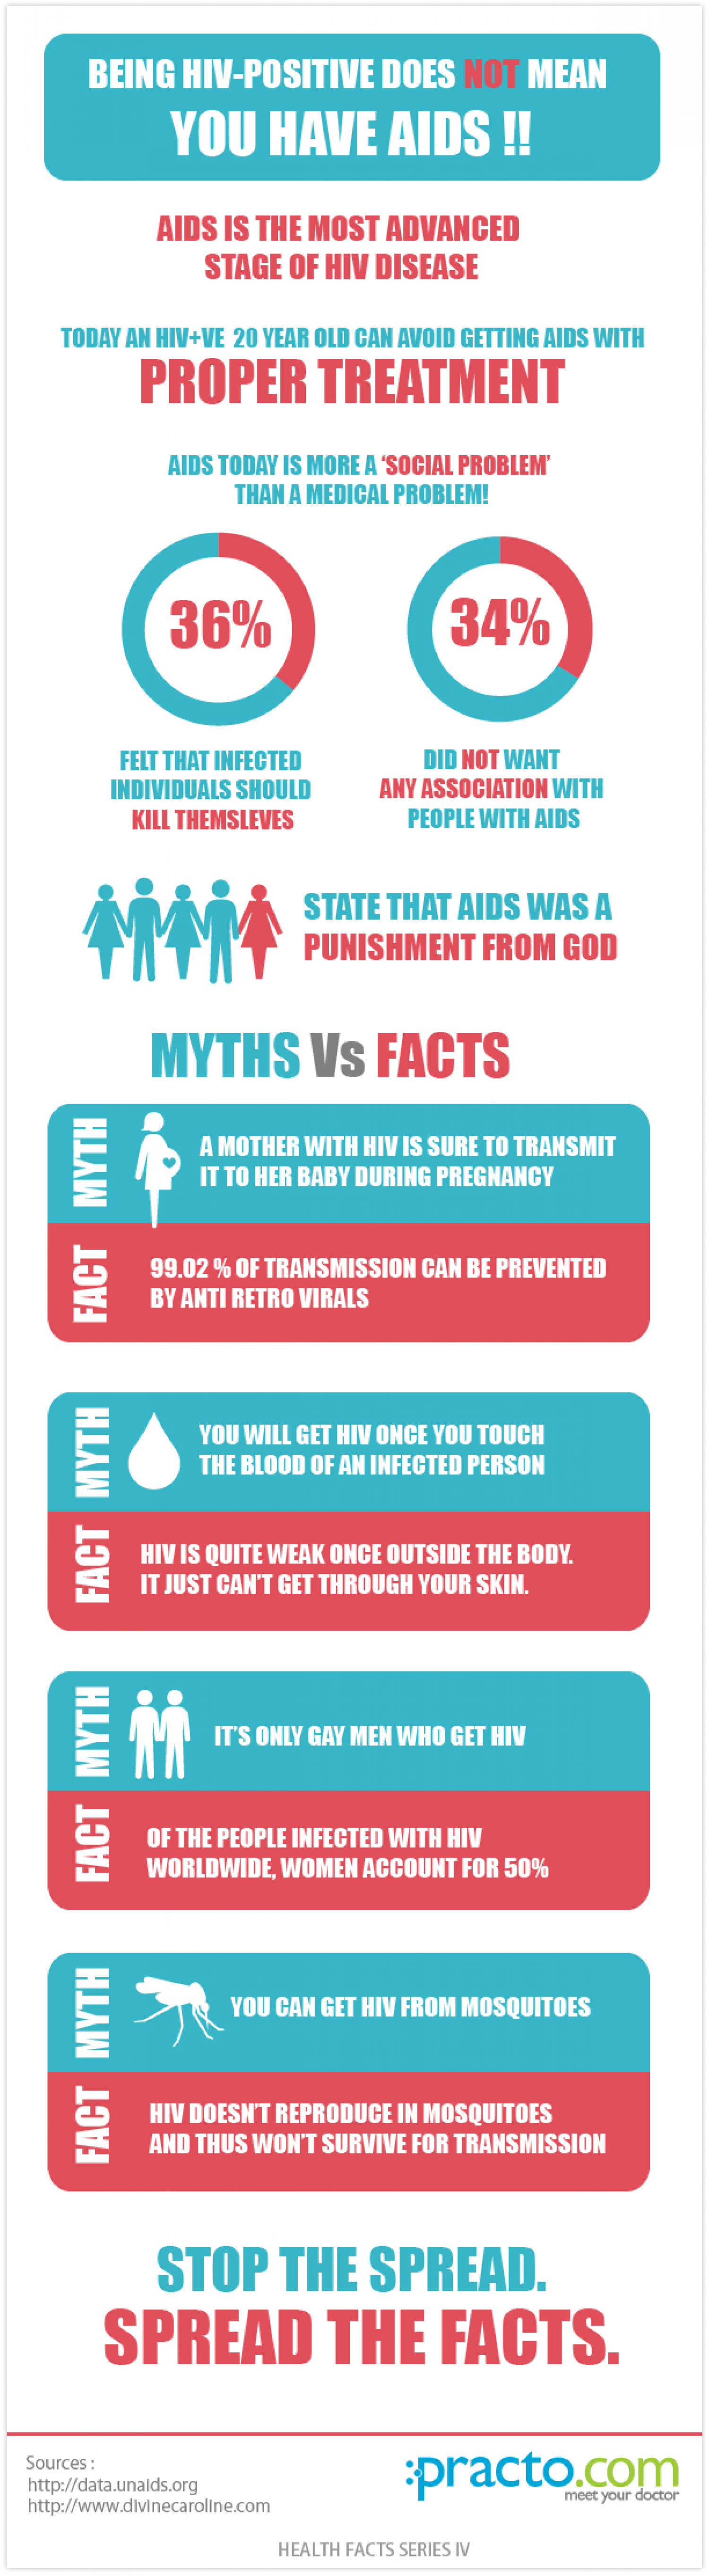 HIV & AIDS: Myths vs Facts Infographic